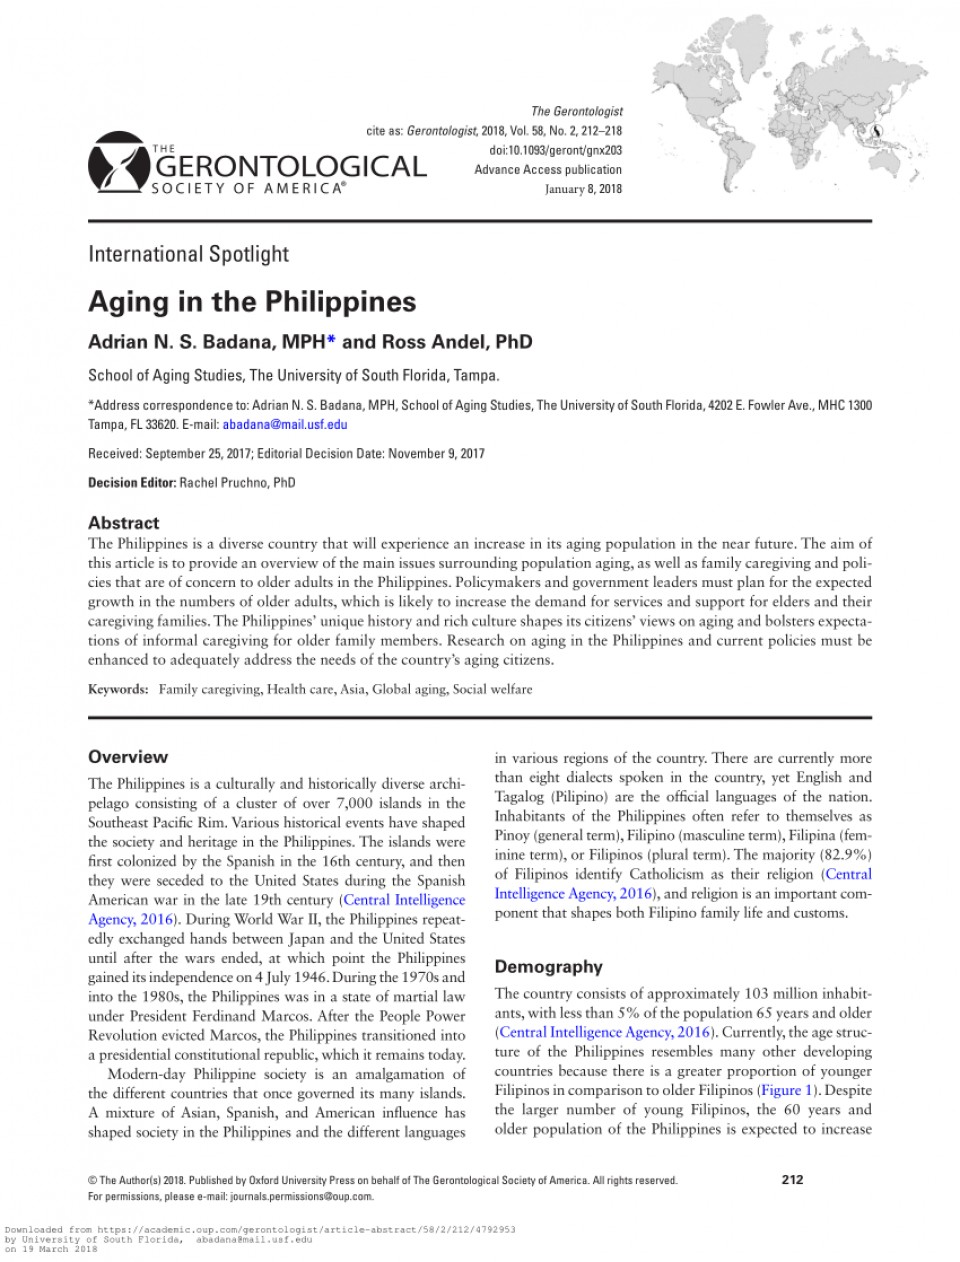 005 Poverty In The Philippines Research Paper Abstract Remarkable 960